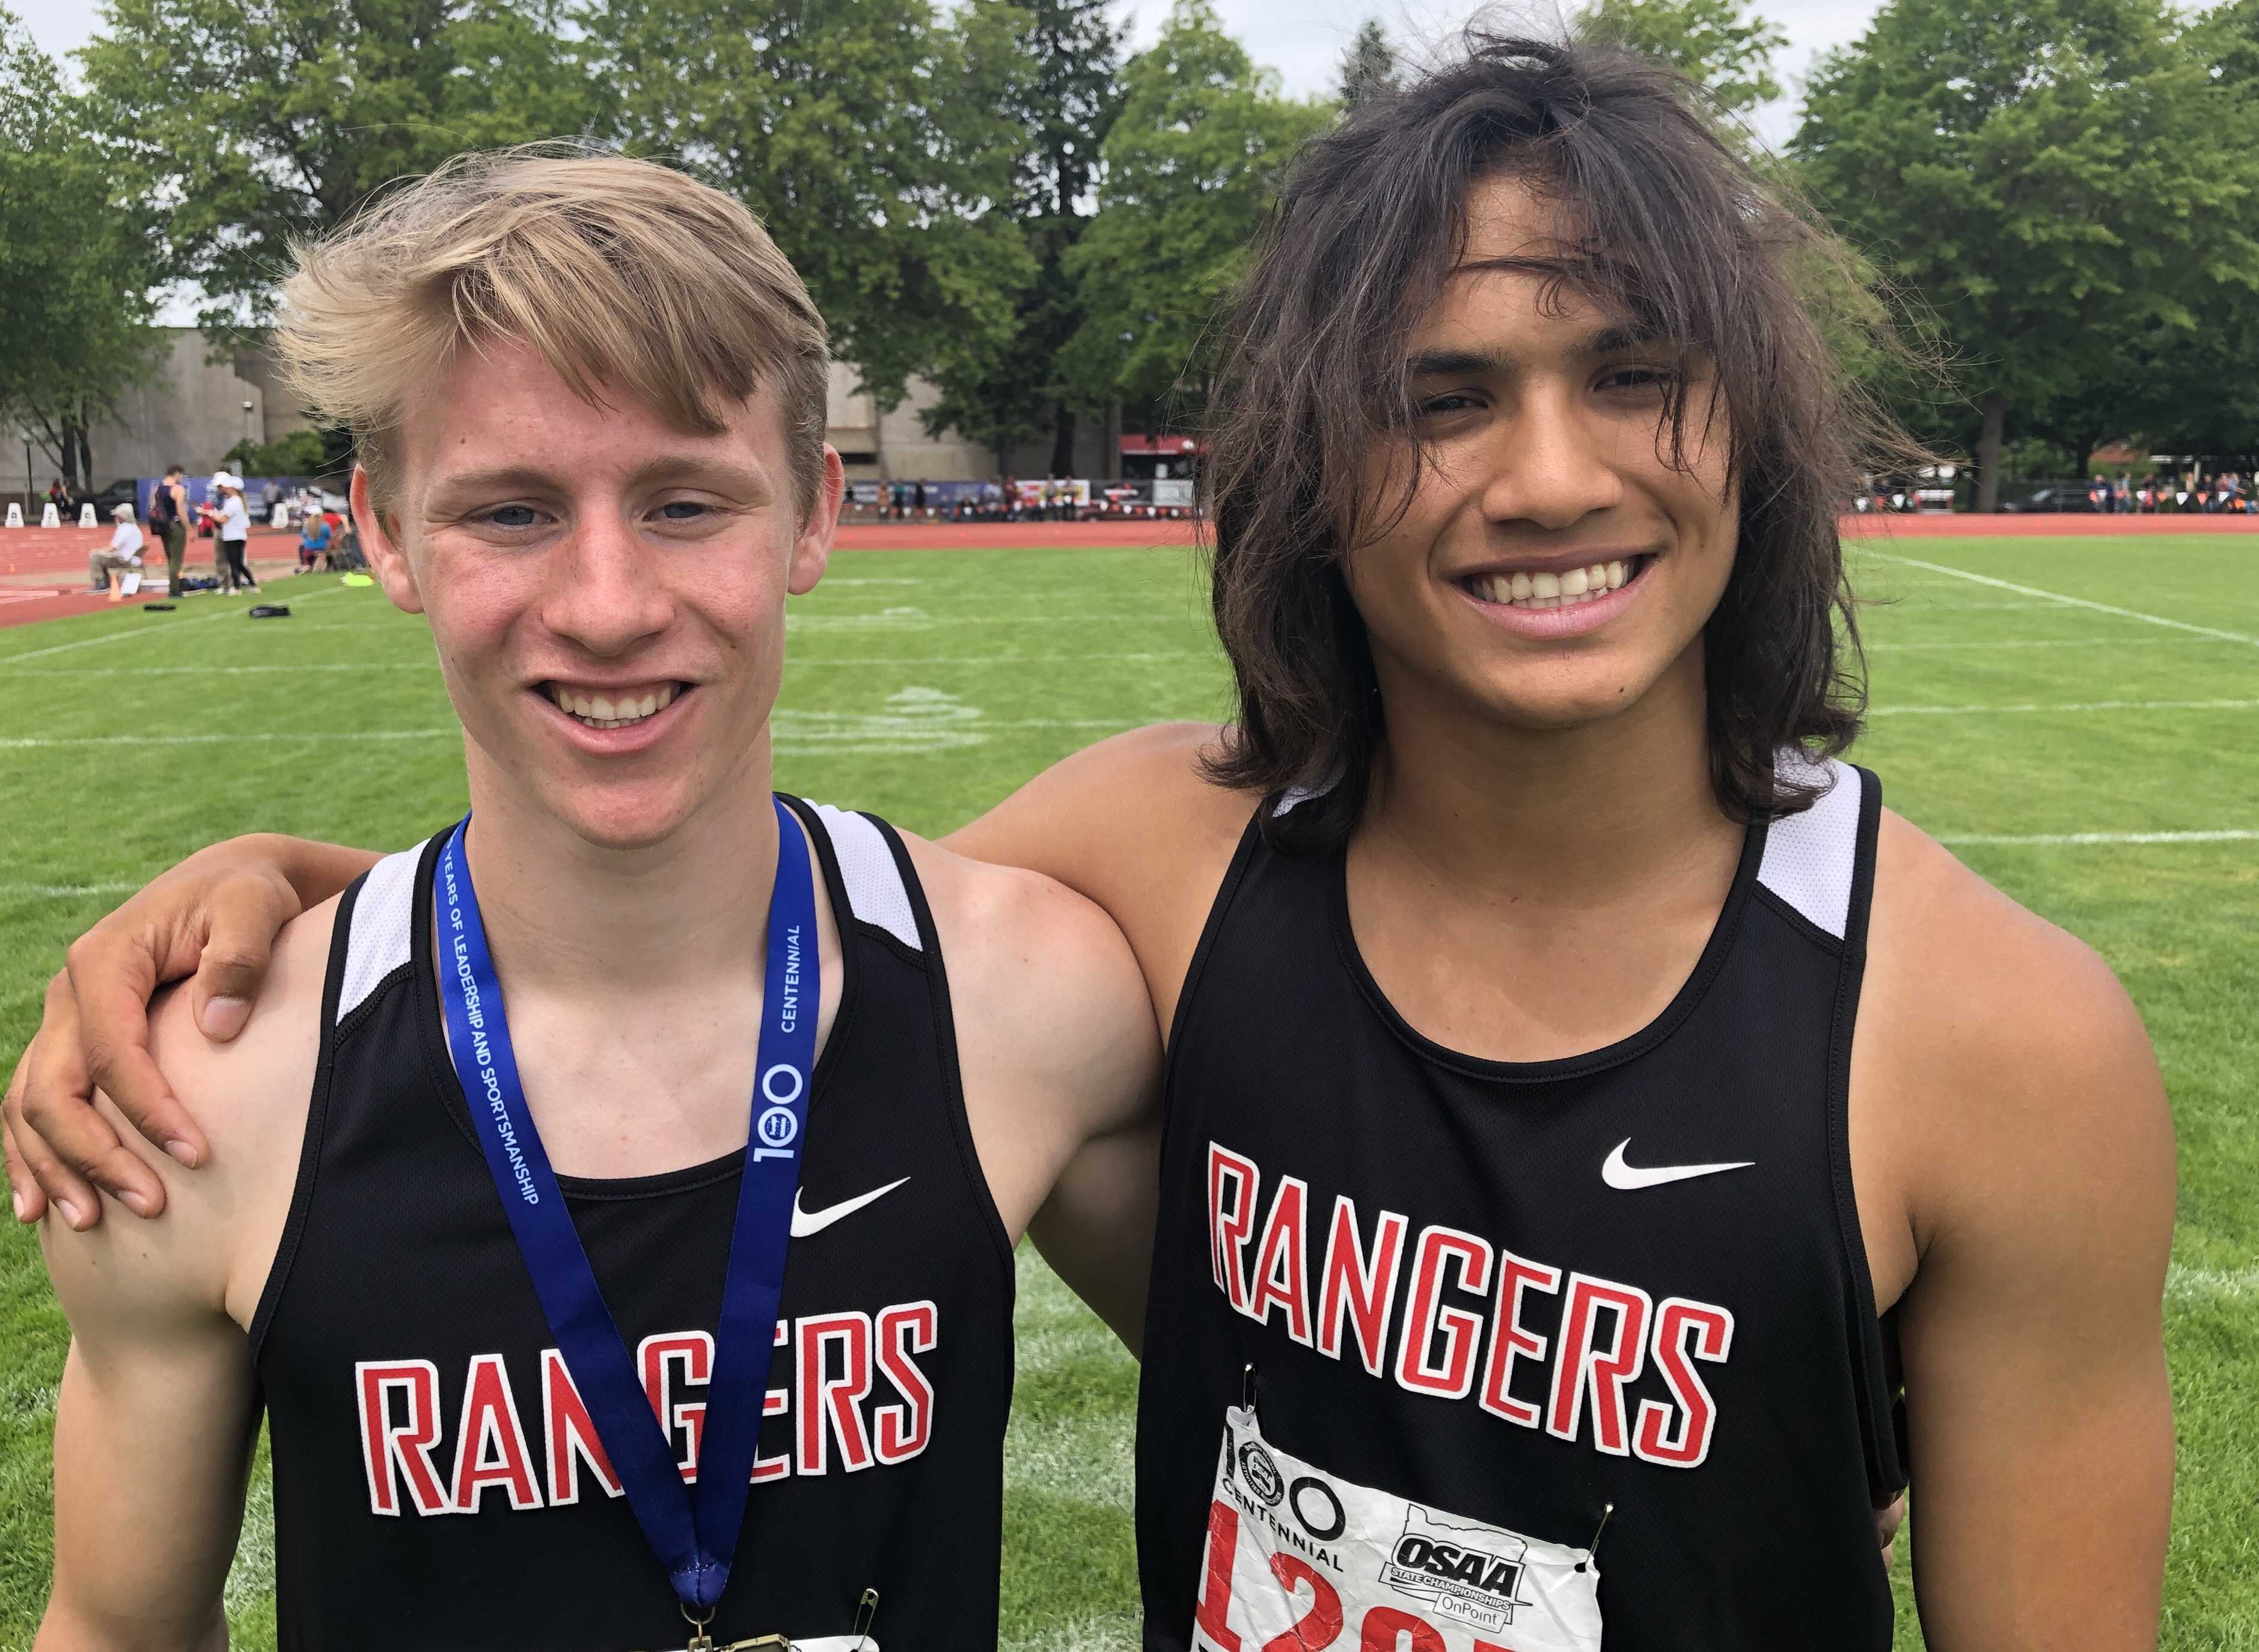 Tanner Masterson (left) and Asa Farrell helped lead Dufur to the 1A title Saturday.